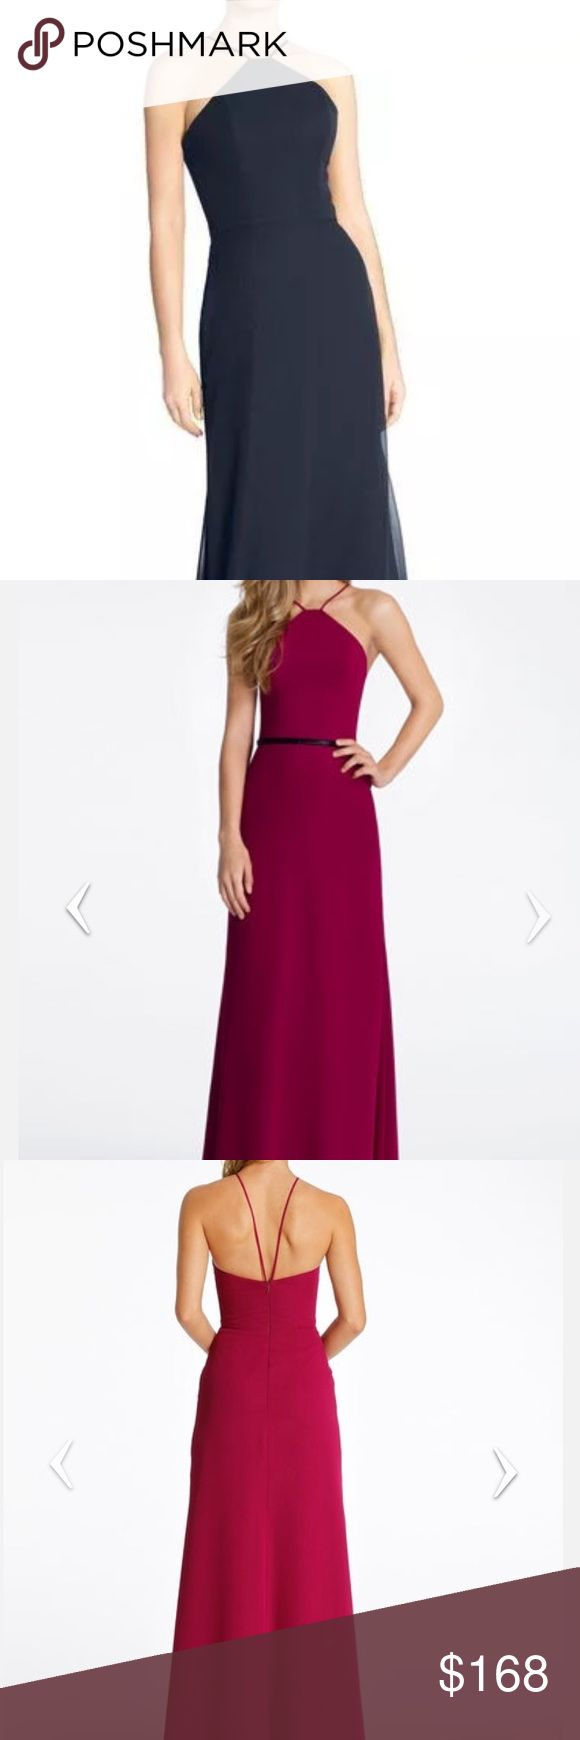 Hayley Paige Occasions Gown Style 5611   Navy chiffon A-line bridesmaid gown, high neck halter, natural waist.  Belt not included.  Dress has been shortened 1 inch Hayley Paige Occasions Dresses